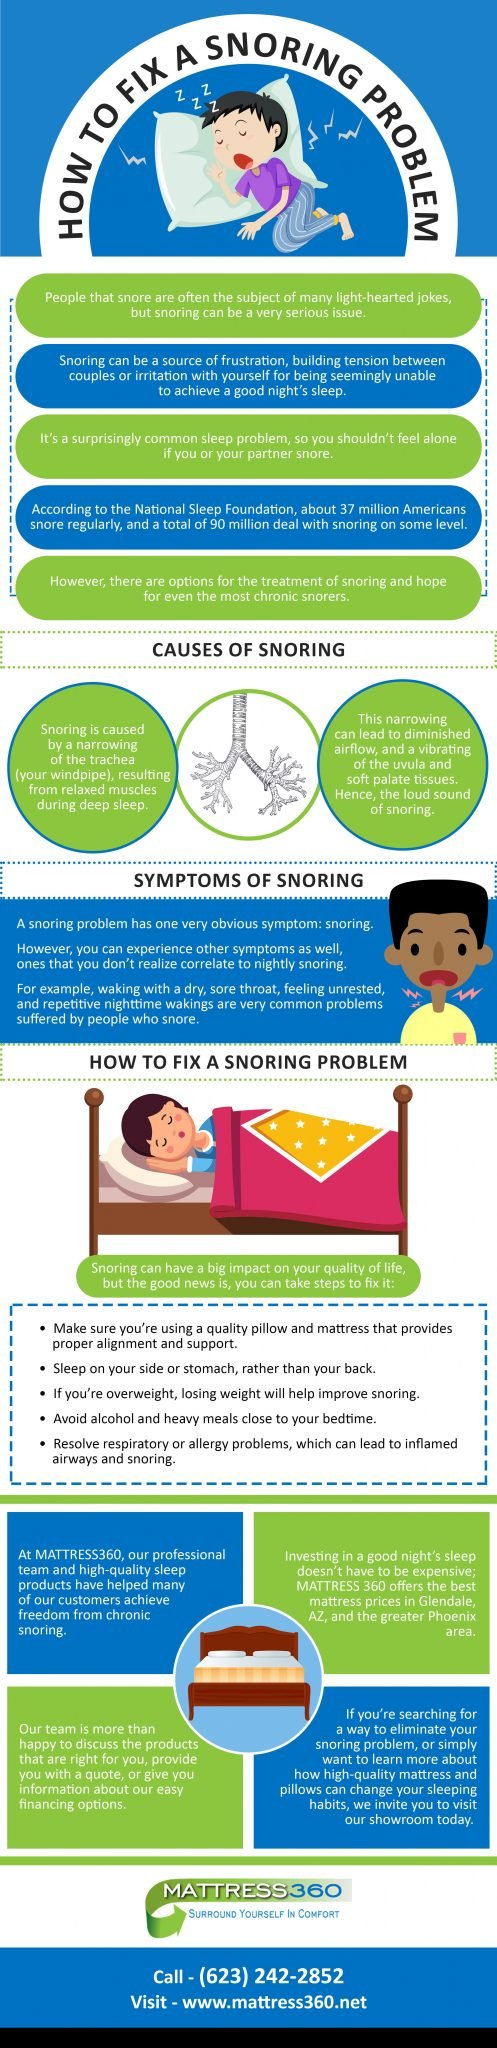 How to Fix a Snoring Problem infographic